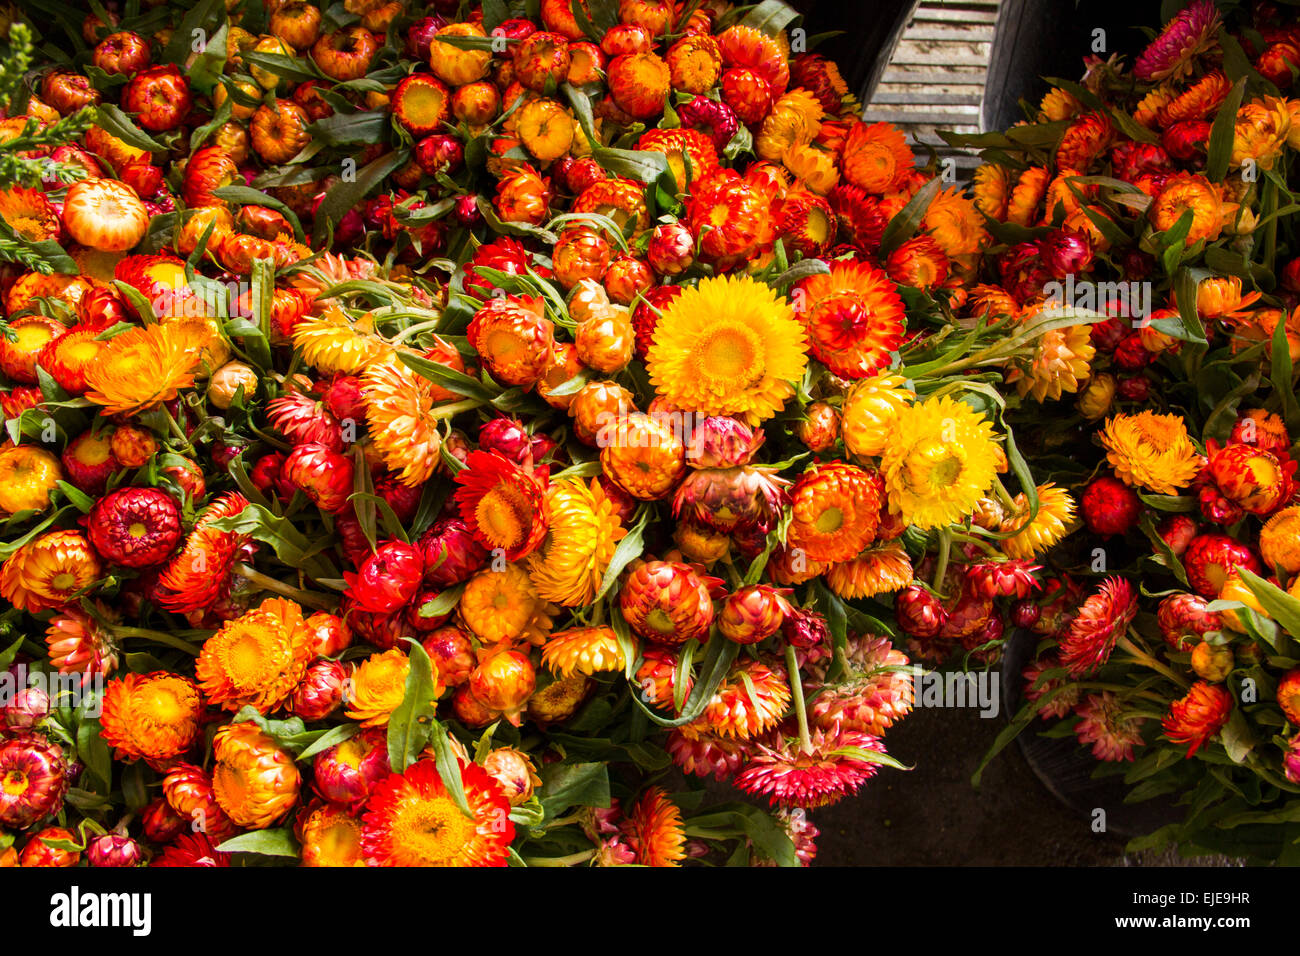 Strawflowers stock photos strawflowers stock images alamy colorful strawflowers at flower market in thailand stock image mightylinksfo